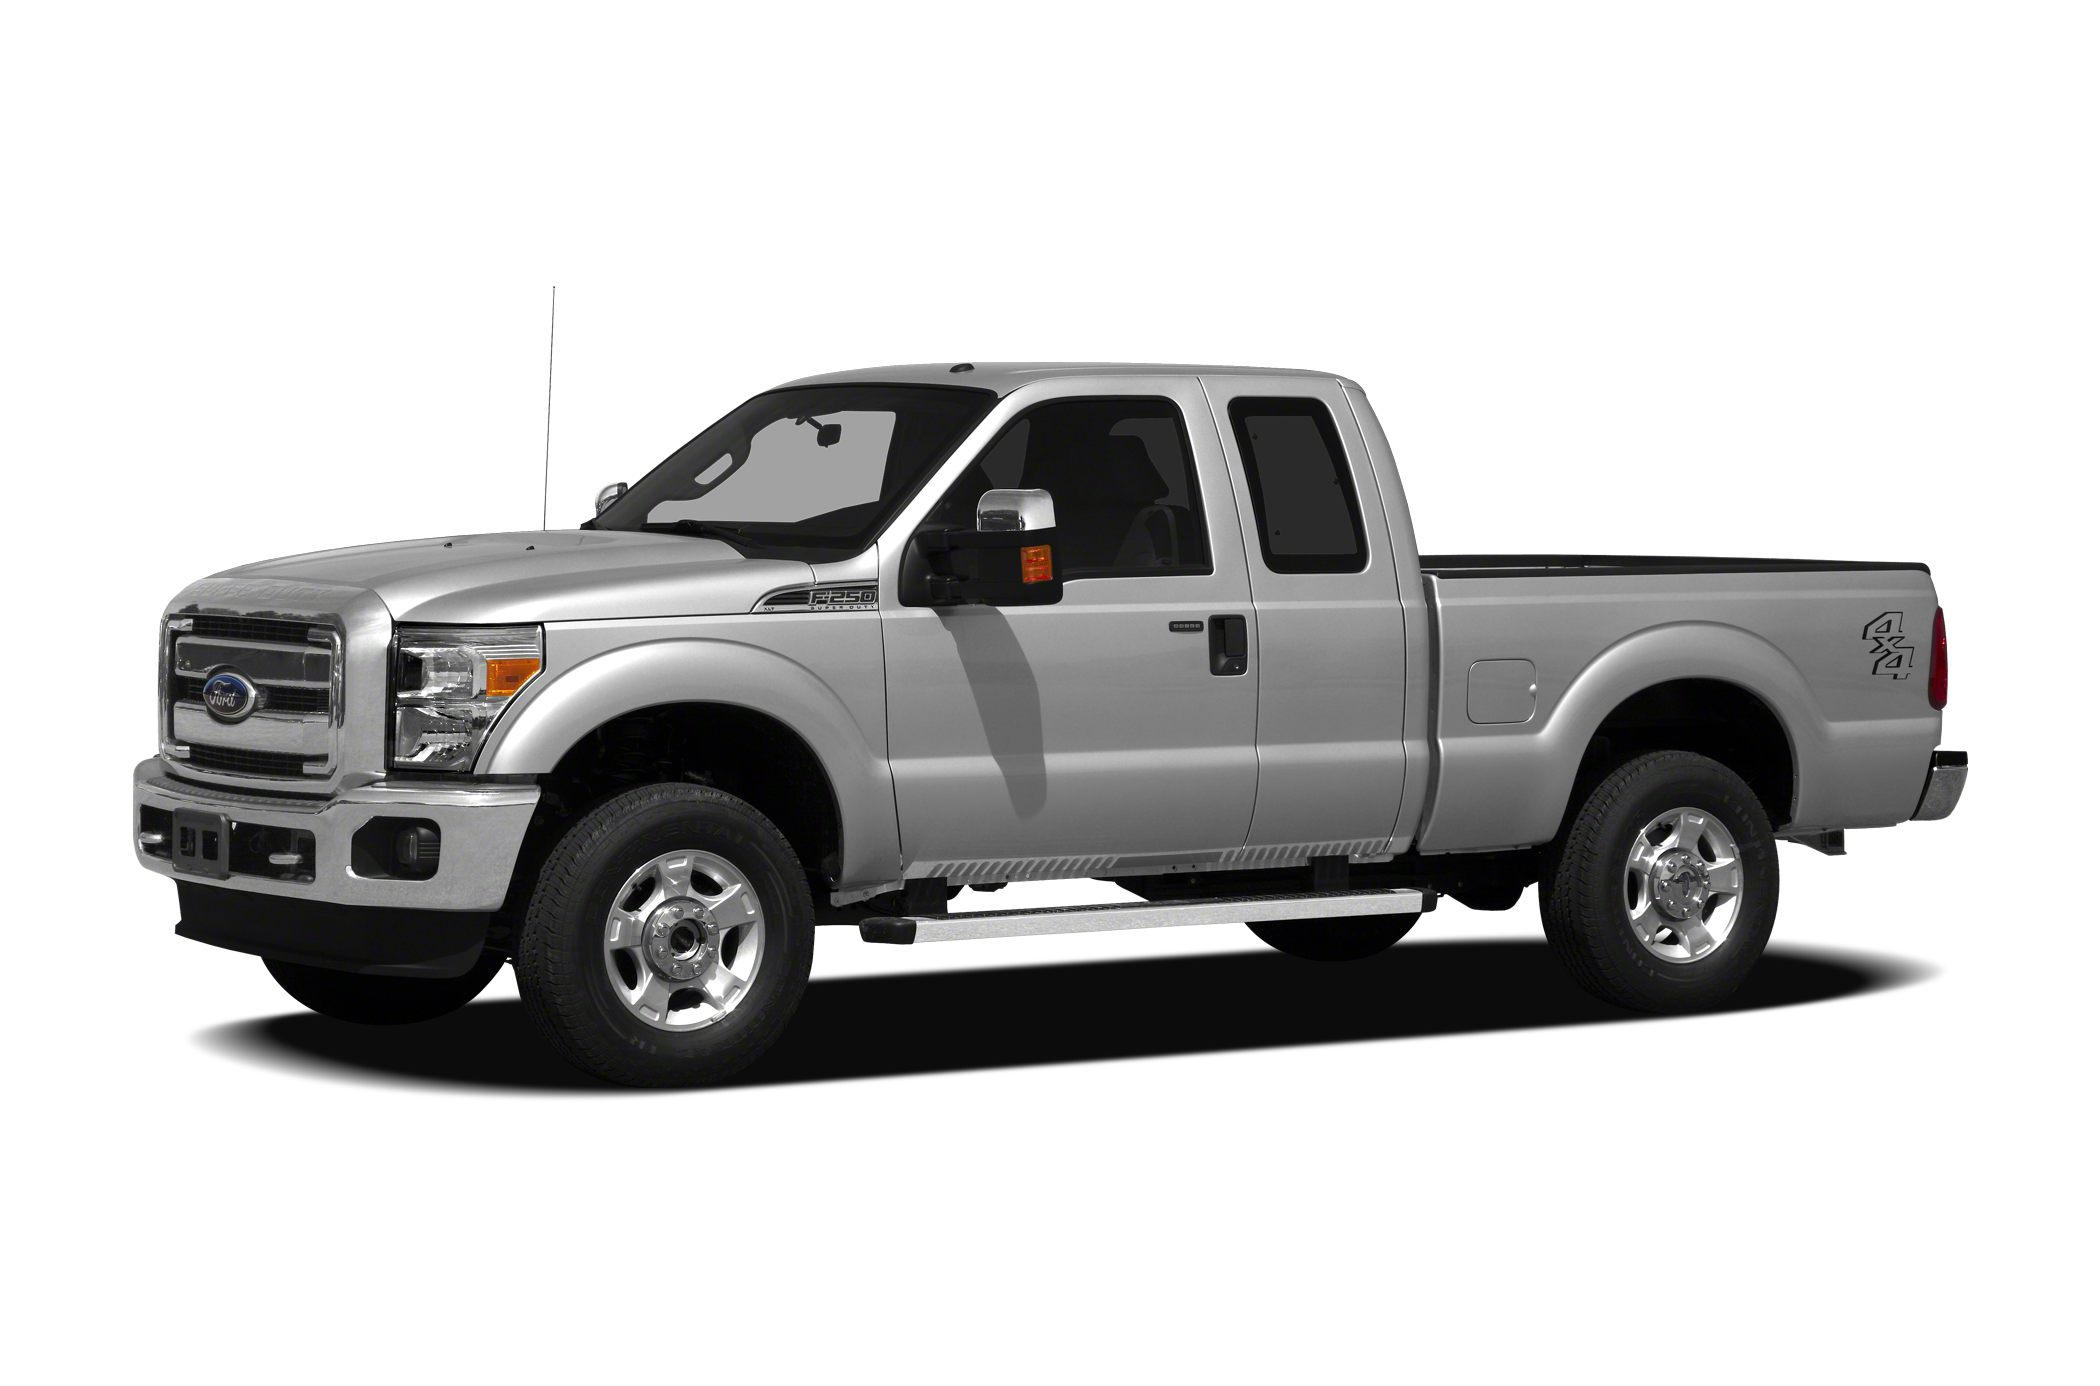 2012 Ford F-250 Super Duty Auto Check 1 Owner COMPLIMENTARY ROYAL SHIELD VEHICLE LIMITED WARRA